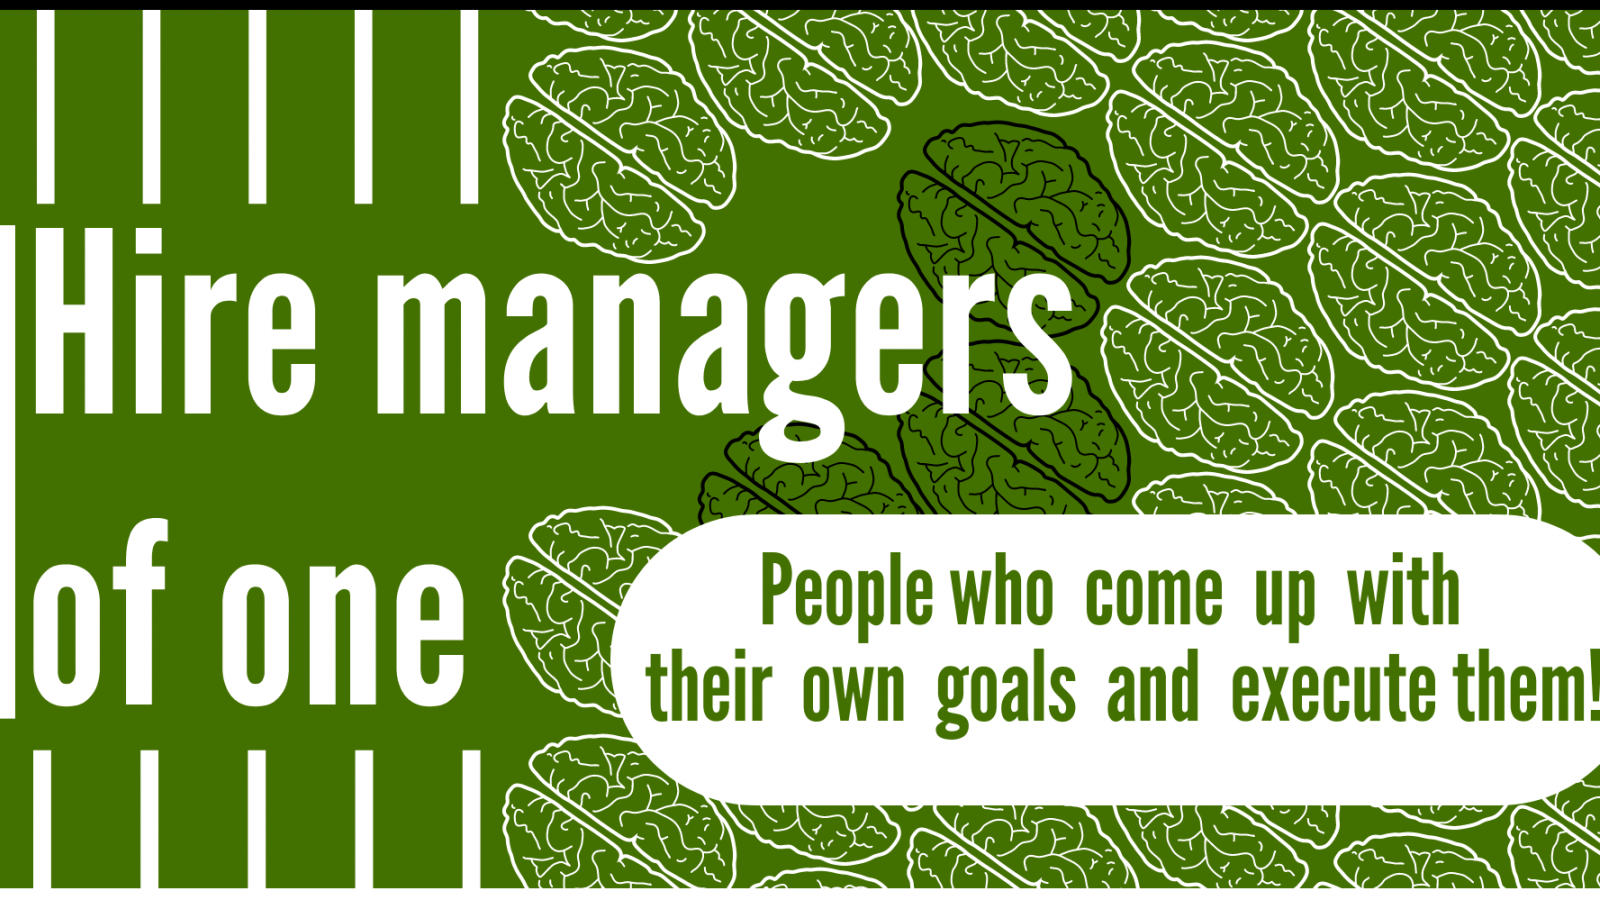 Hire managers of one